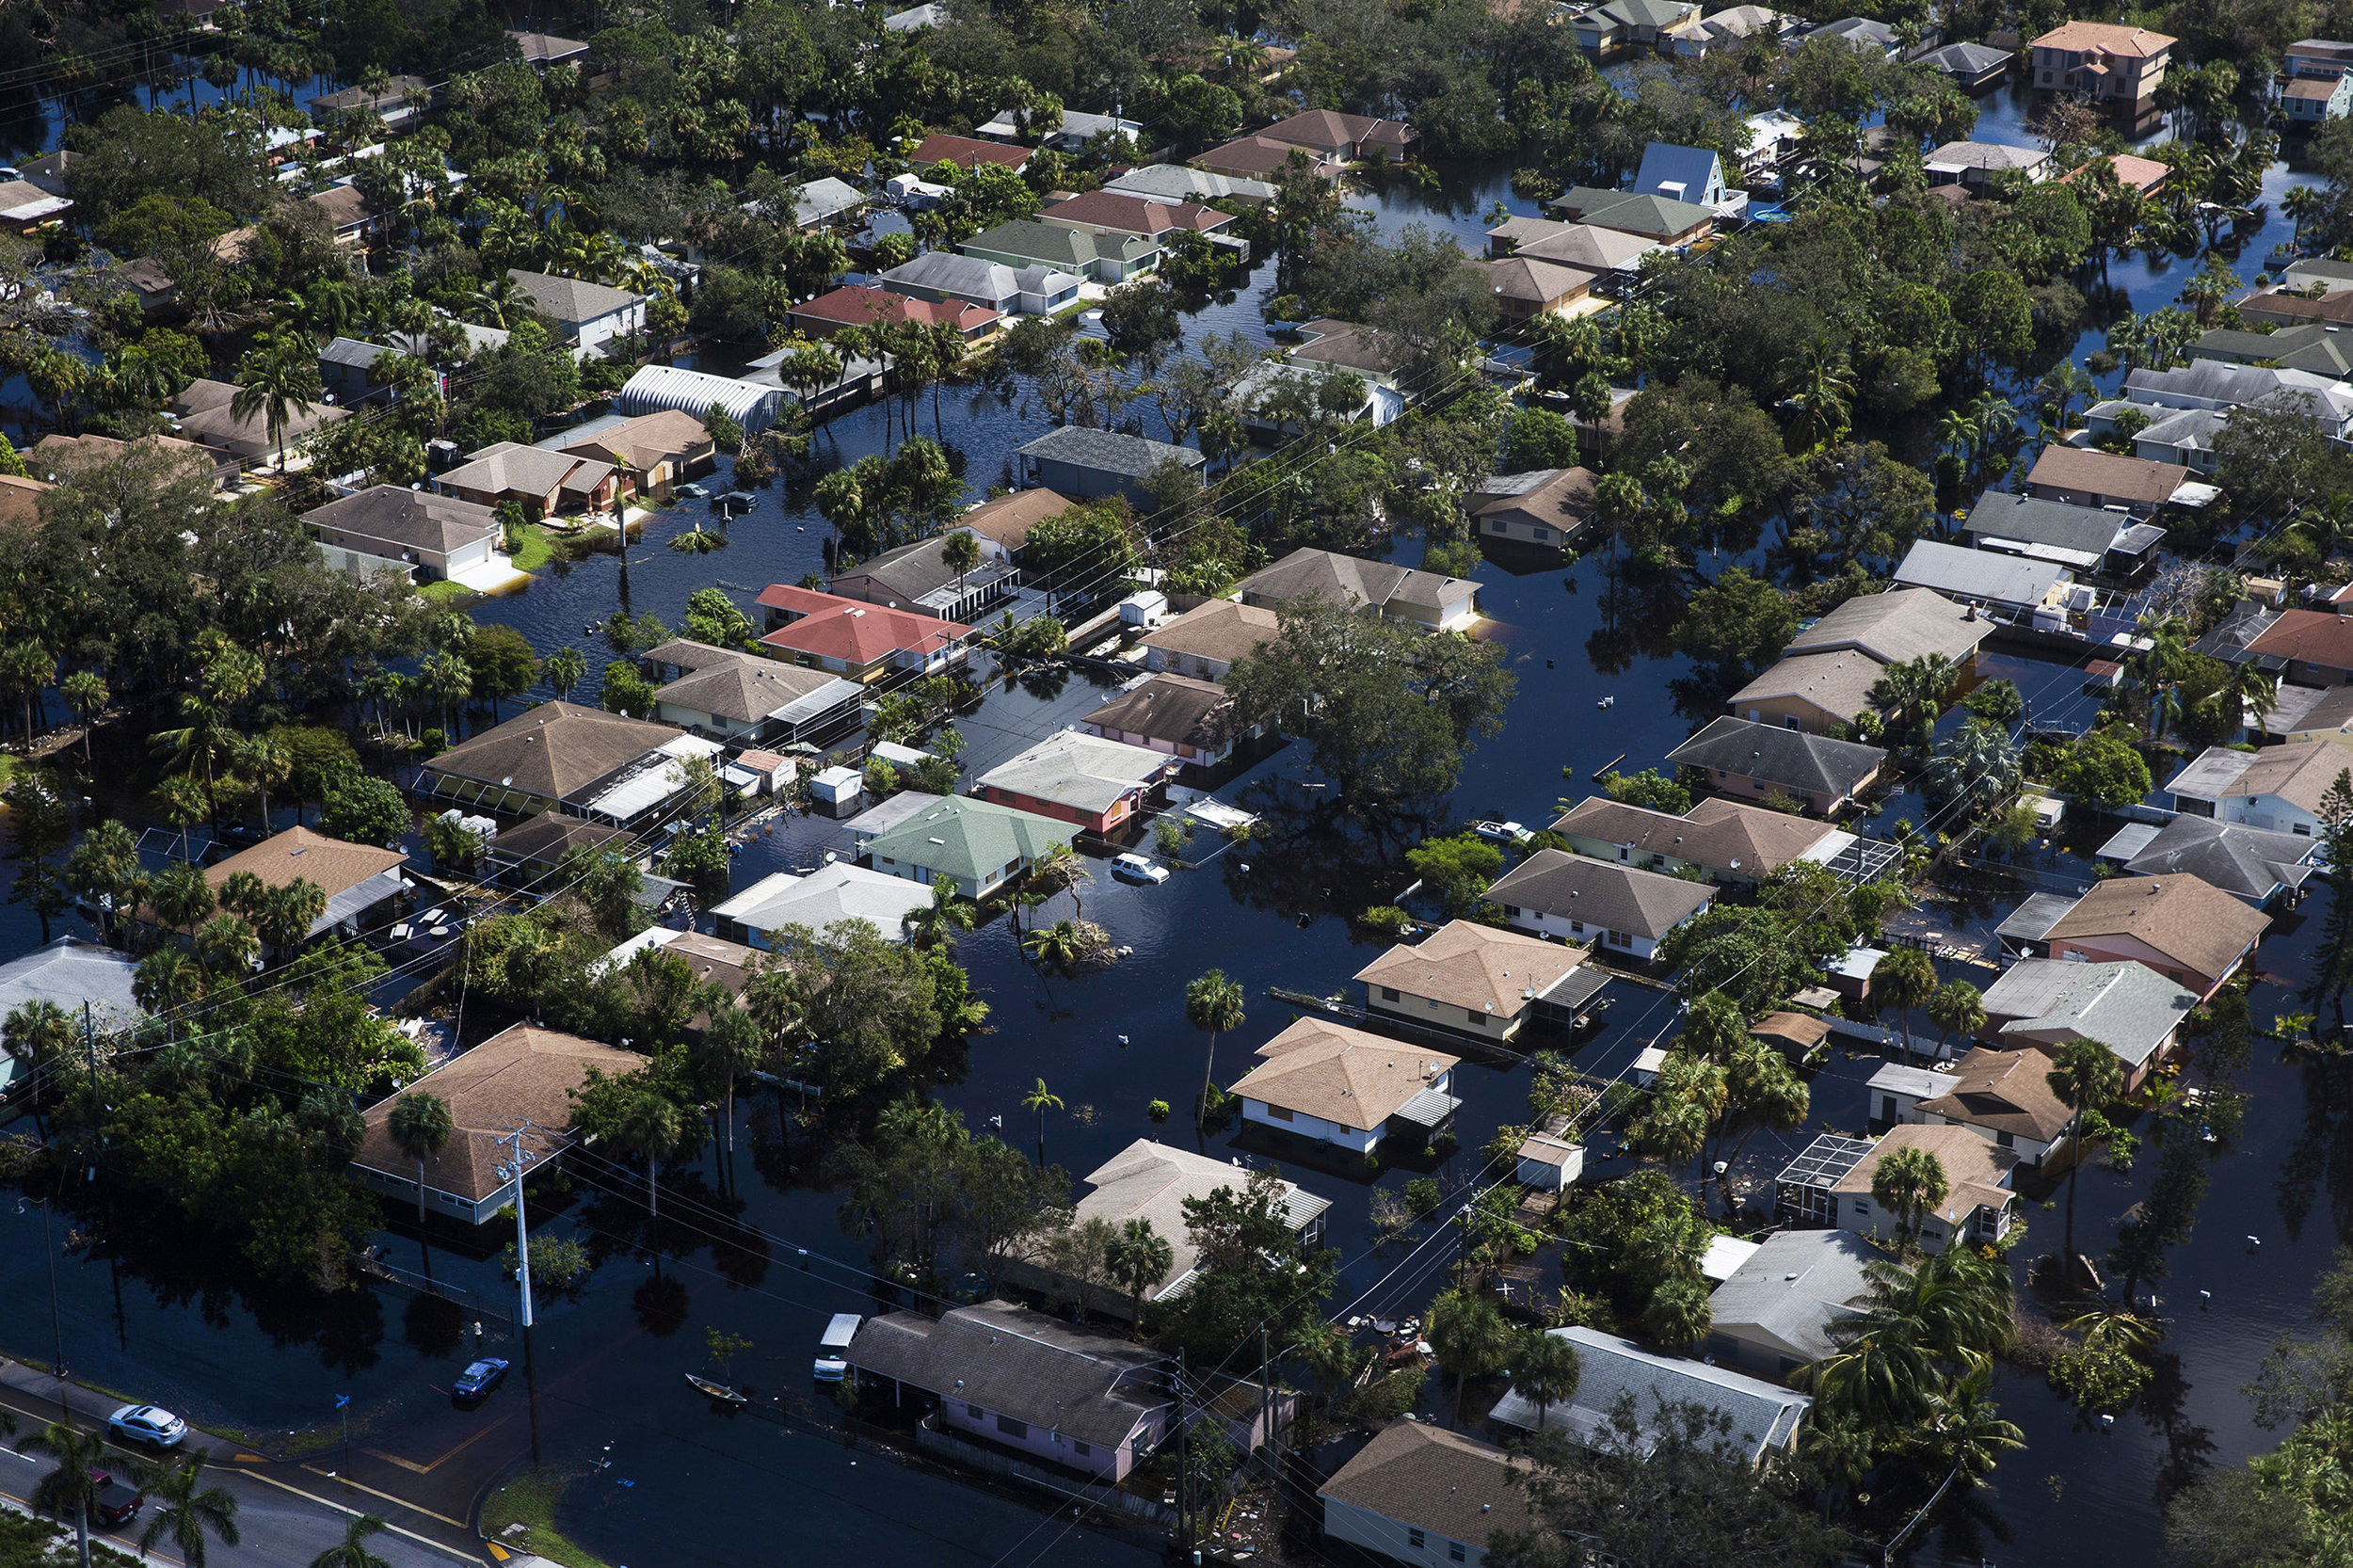 The five streets that make up the Quinn Street area in Bonita Springs remain flooded on Saturday, Sept. 16, 2017, six days after Hurricane Irma. This is the second time in two weeks that the neighboring Imperial River flooded the residential area.